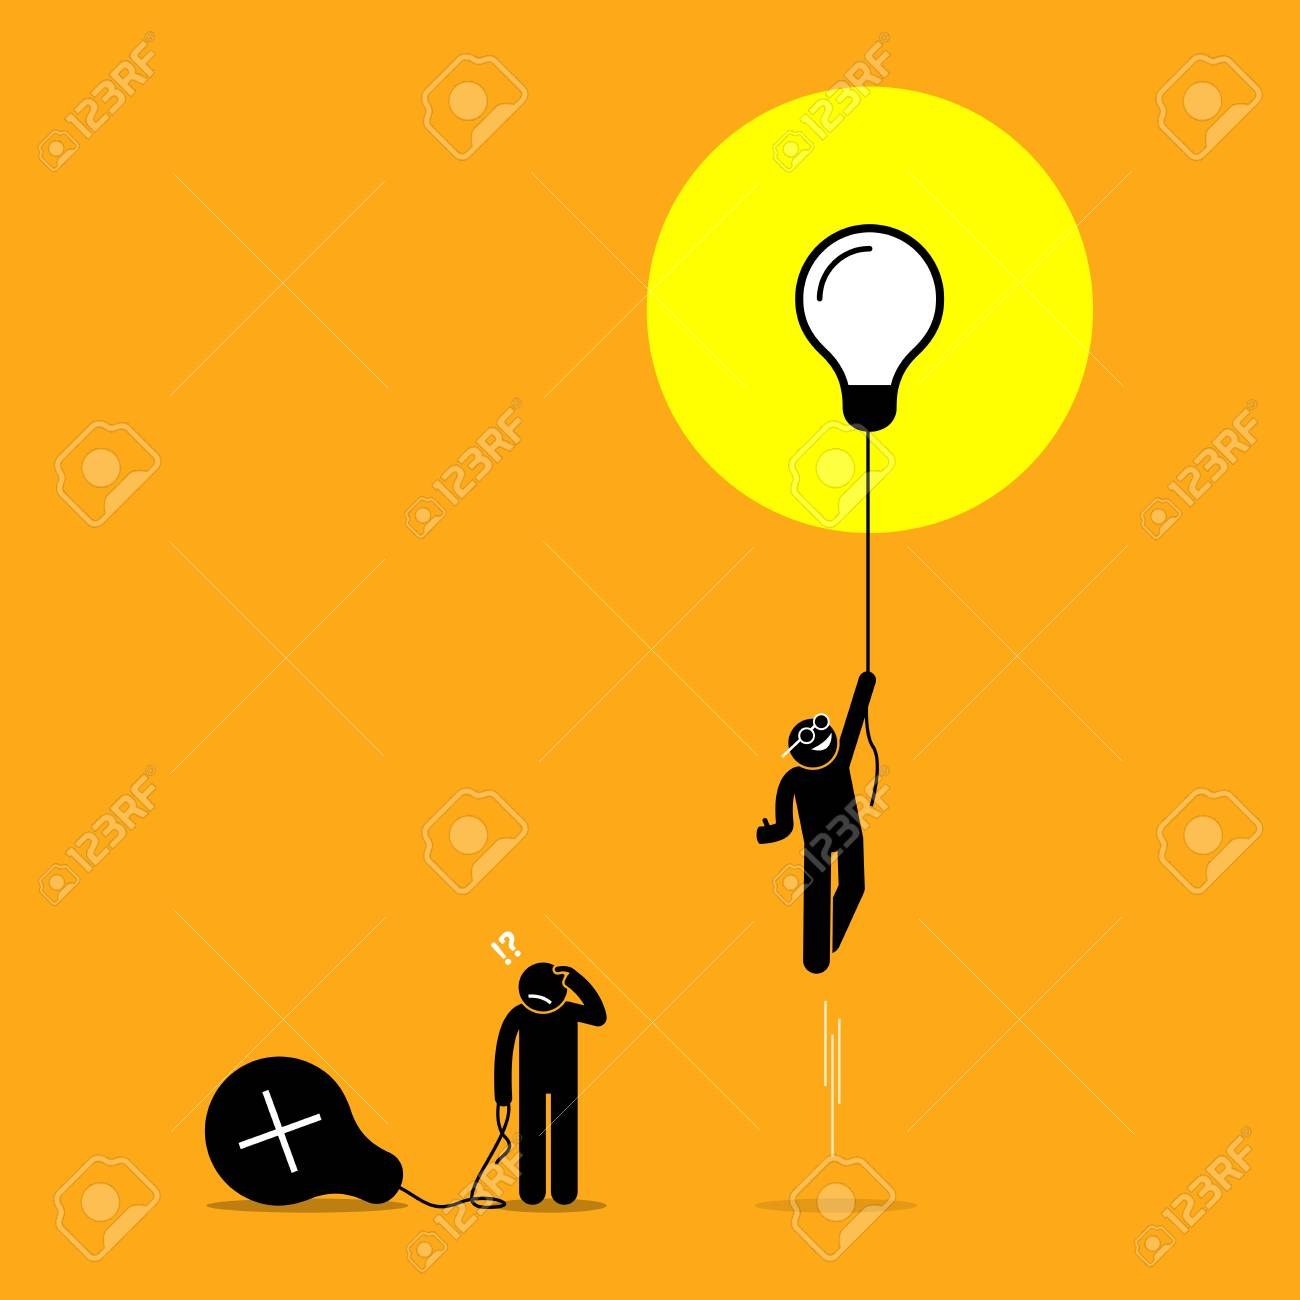 Two person created different ideas but only one is having success, while the other fails. Vector artwork shows the concept of idea success and failure. - 103679216